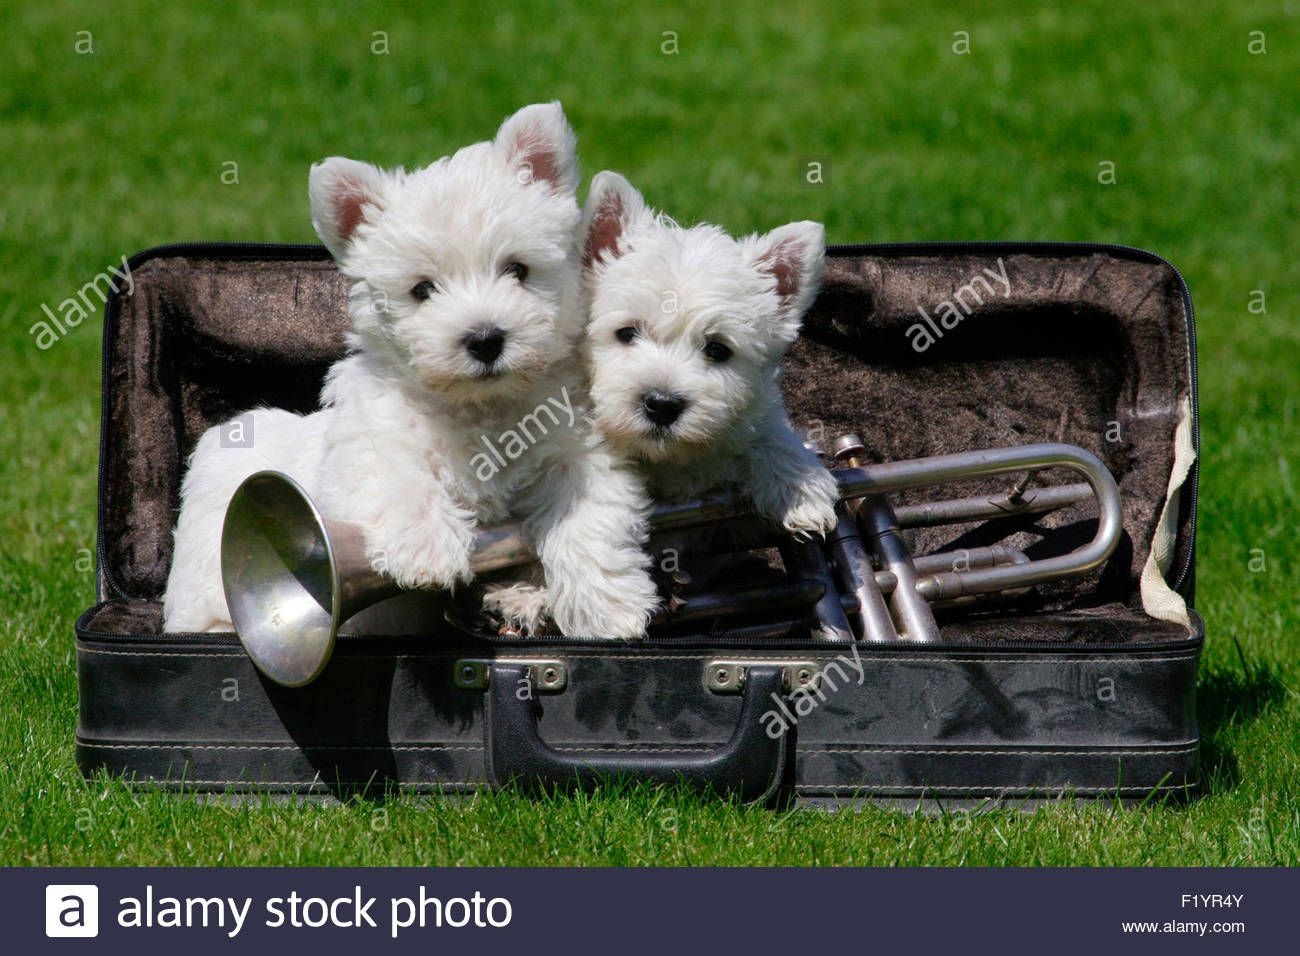 West Highland Terrier Westie Two Puppies An Instrument Case Lawn Stock Photo Royalty Free Image 87277371 Cutest Dog Ever Cute Animals West Highland Terrier